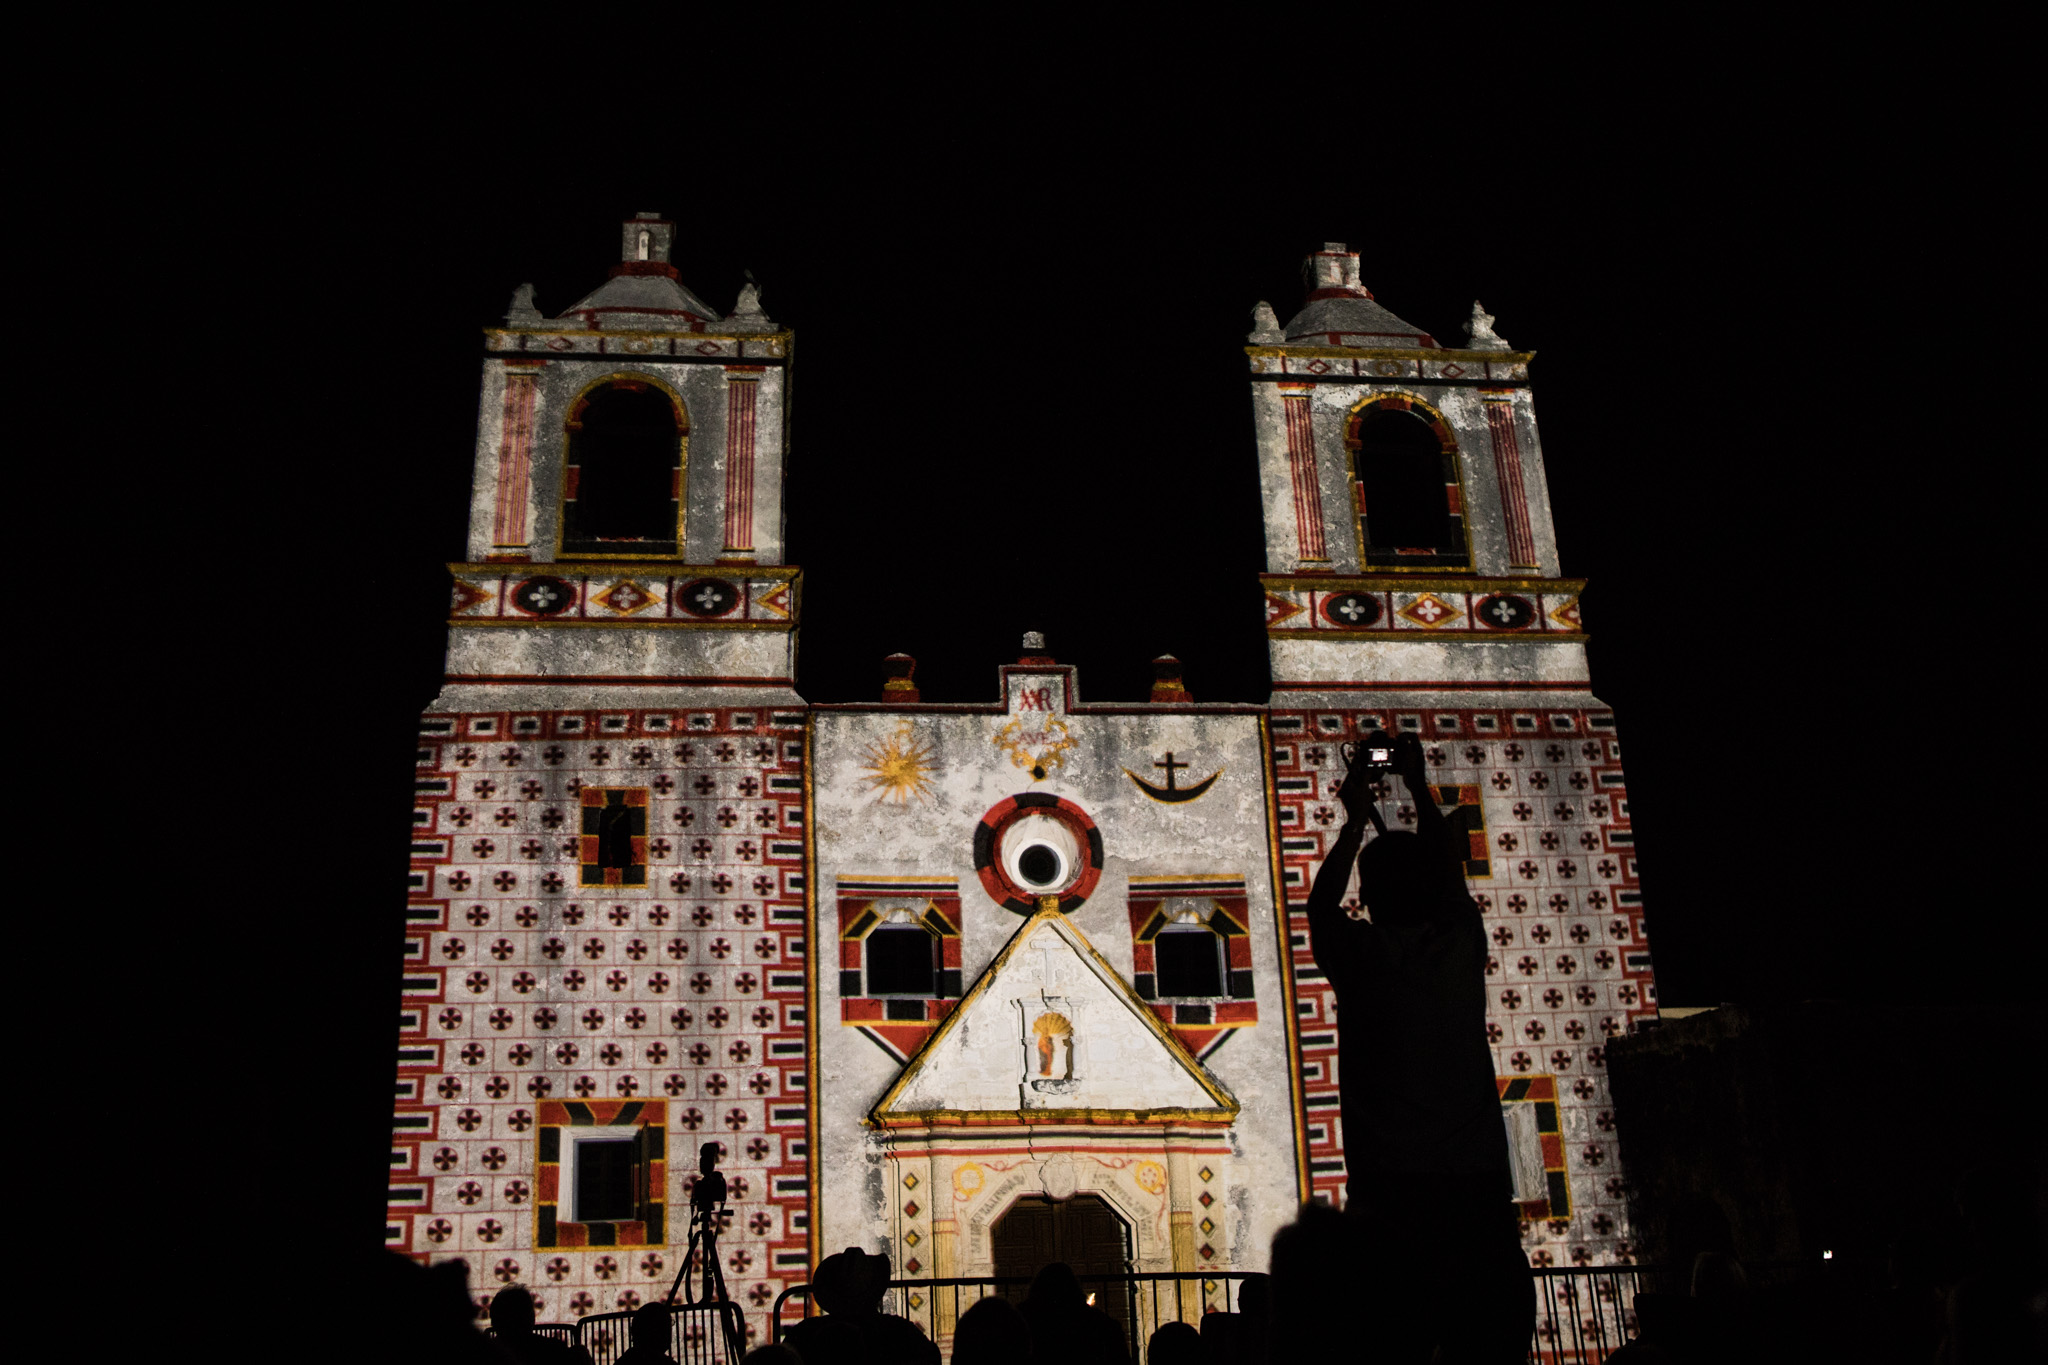 Mission Concepción is lit up to recreate the facade's original designs during Restored By Light.